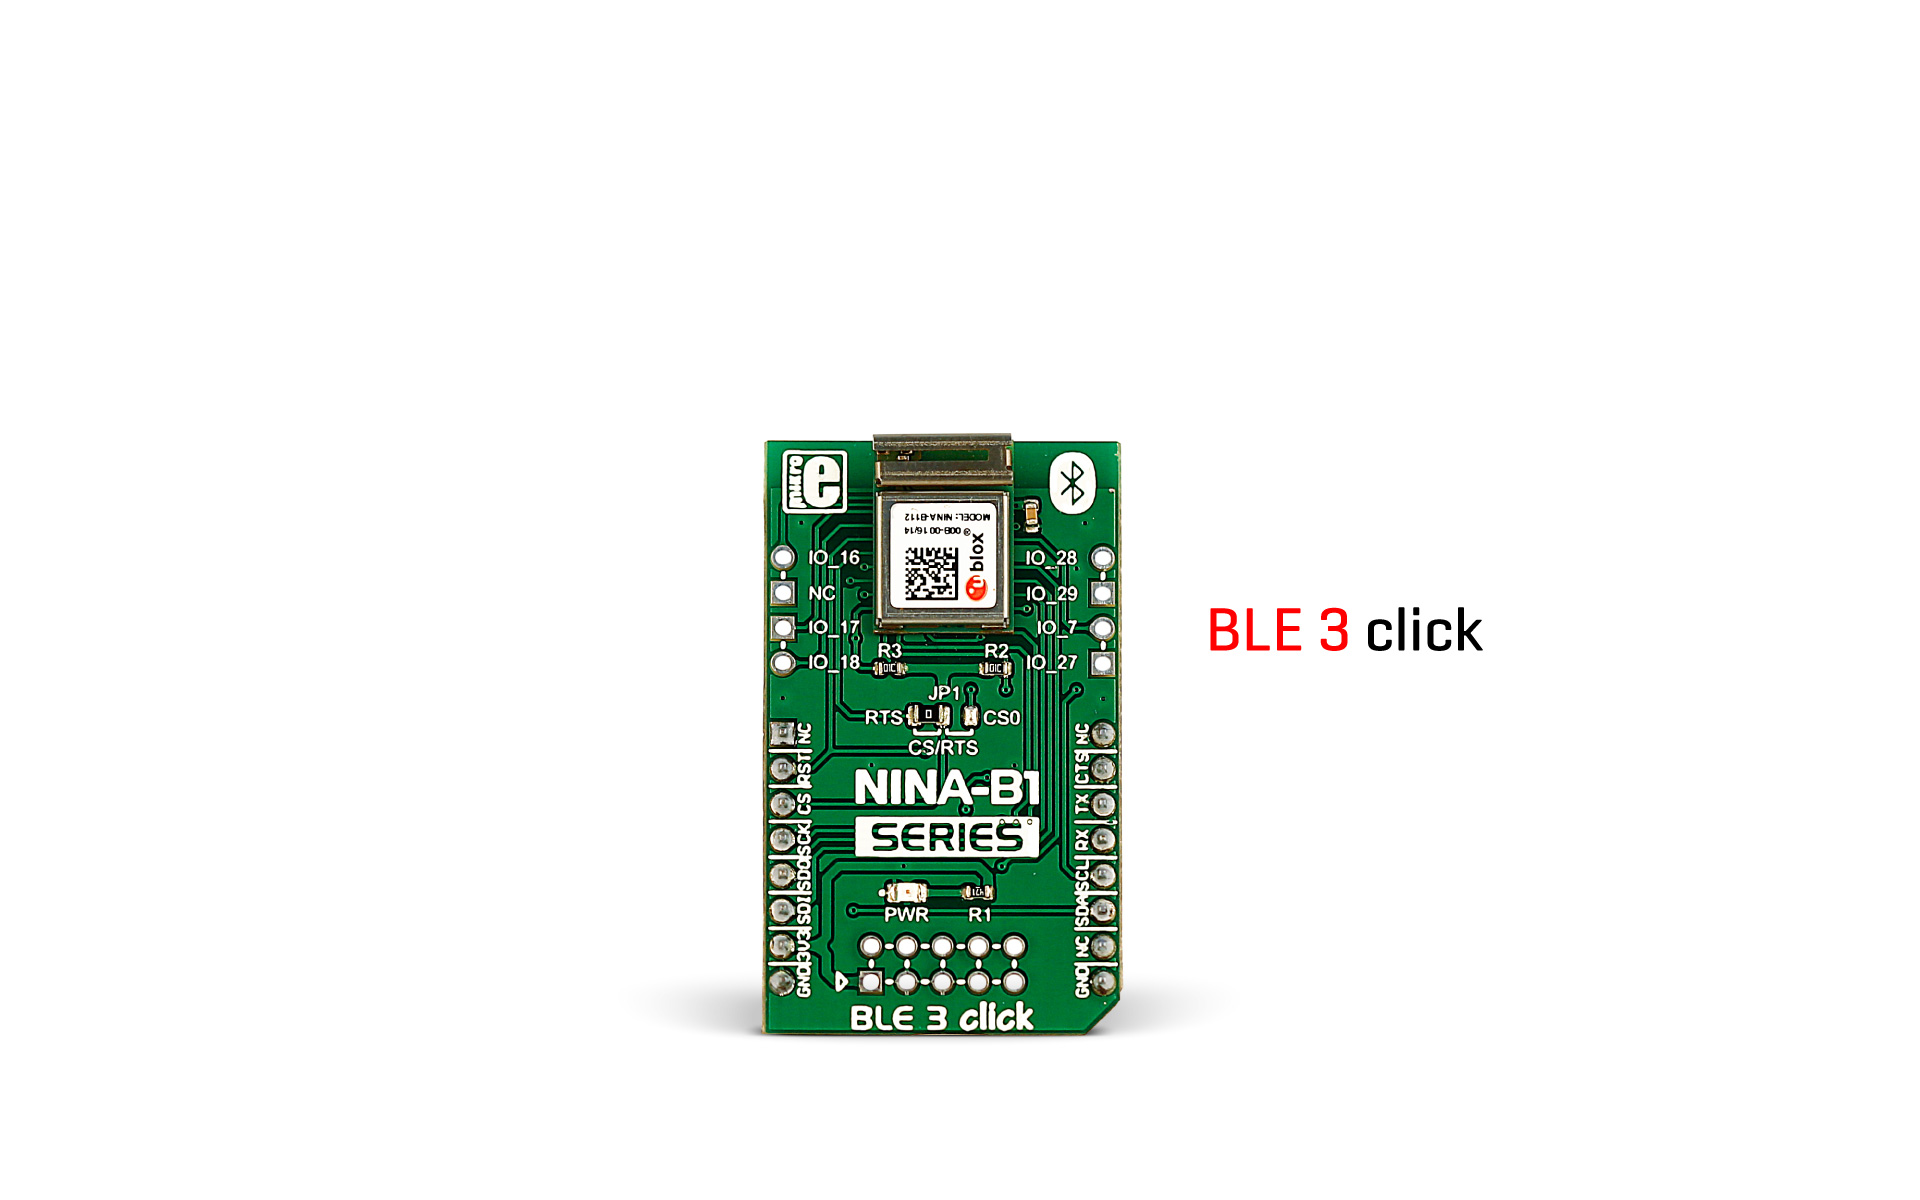 BLE 3 click released